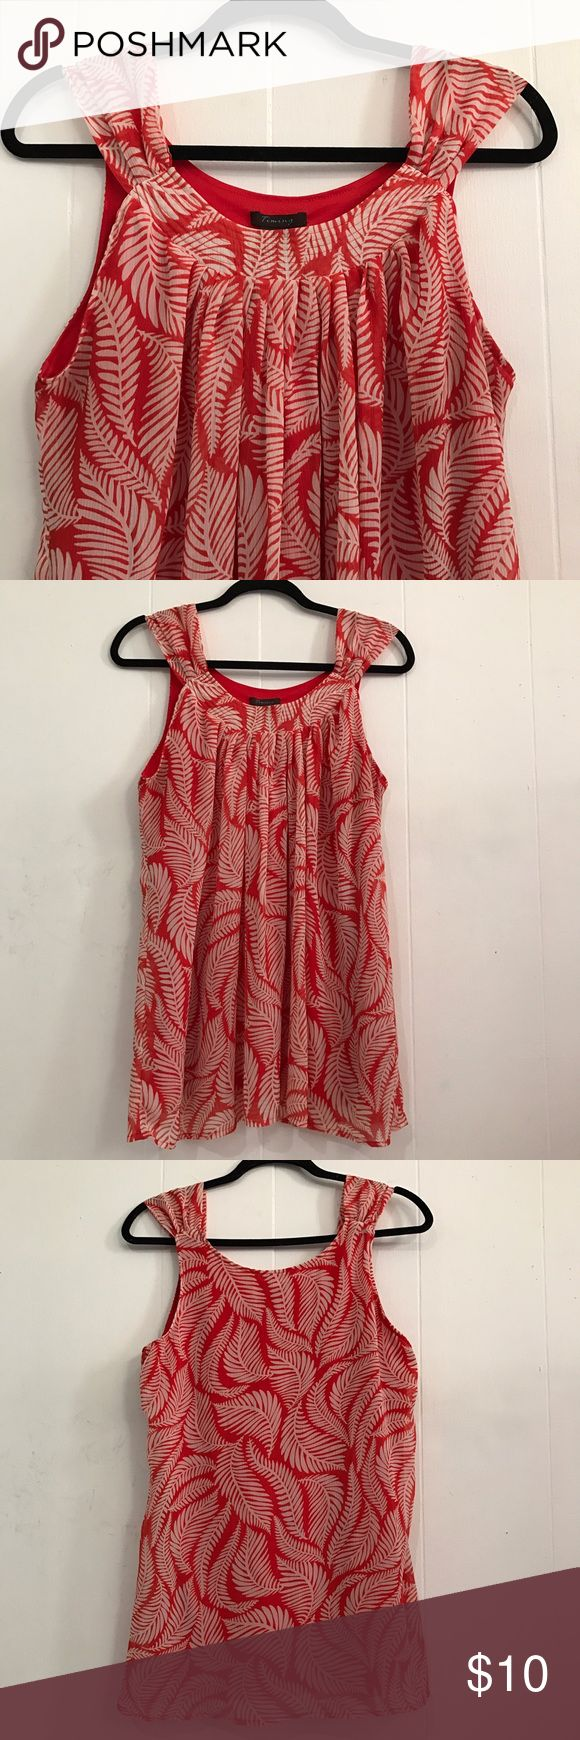 Sexy red orange blouse Sexy red orange blouse. Size: Large. Used a couple of times. Very good condition. Very soft and comfy. Non smoke home. Price is firm ✔️add another bundle to save 10% timing Tops Blouses